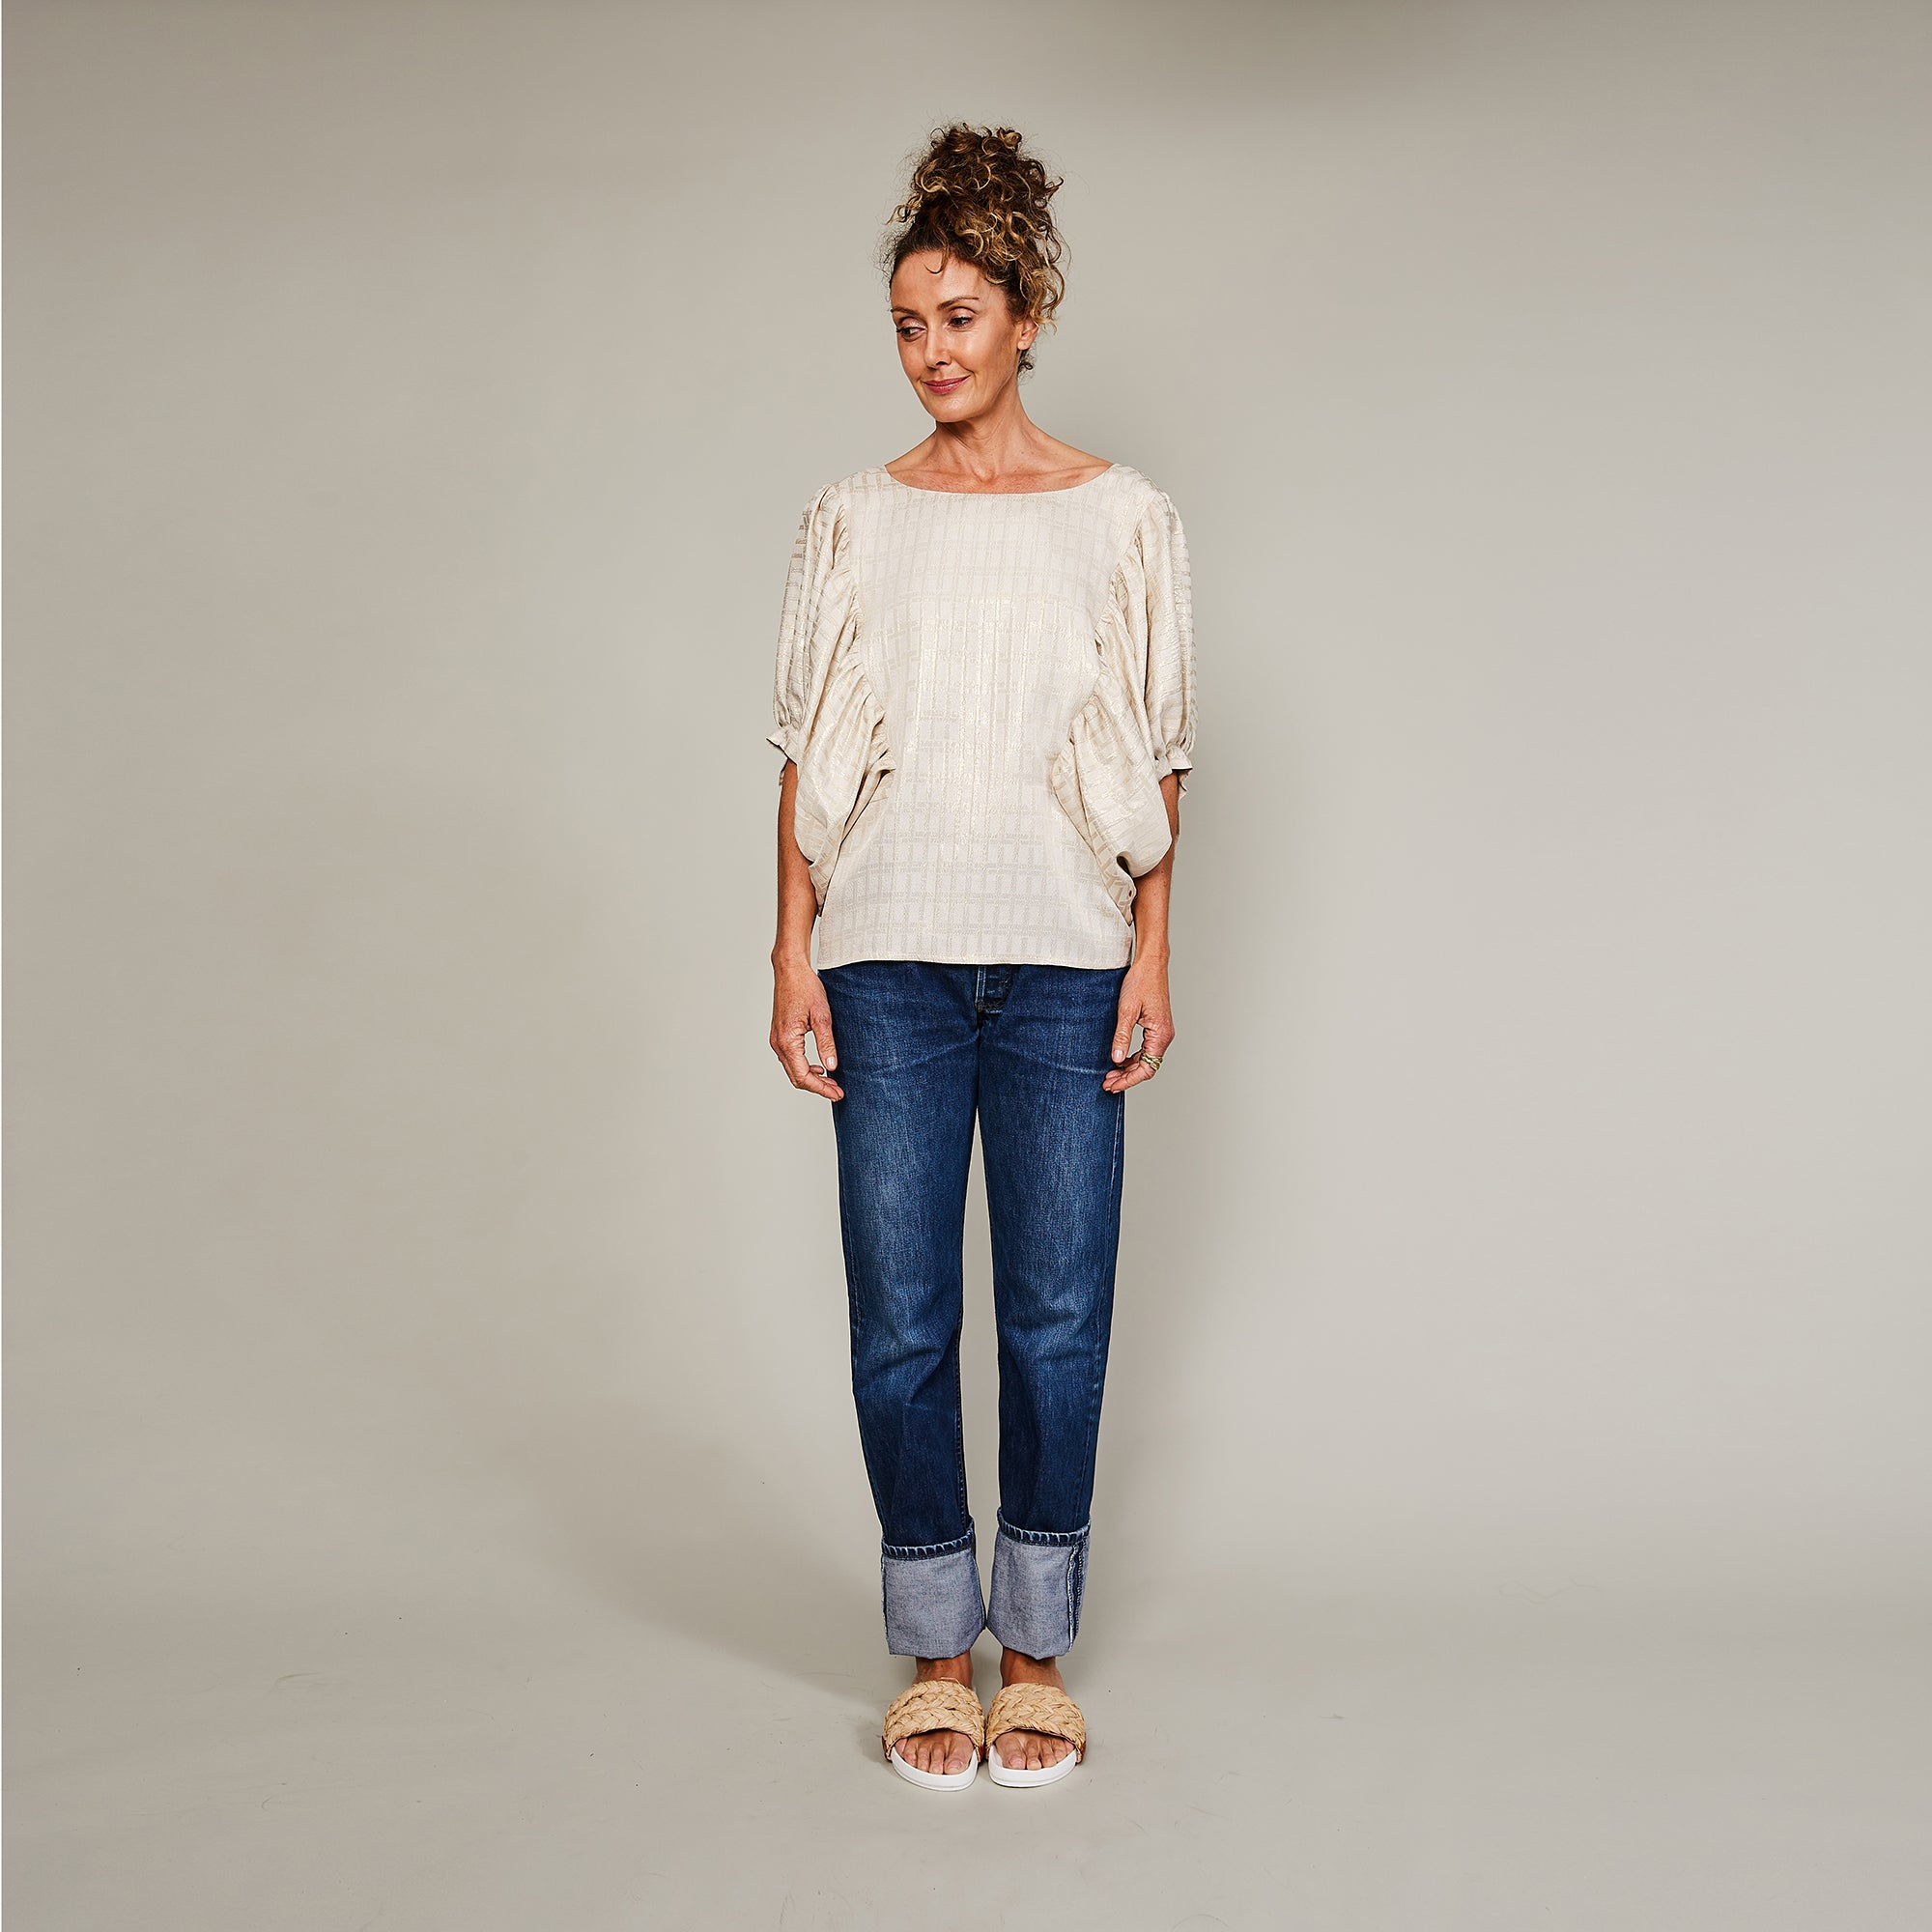 Up, Up and Away Silk Top